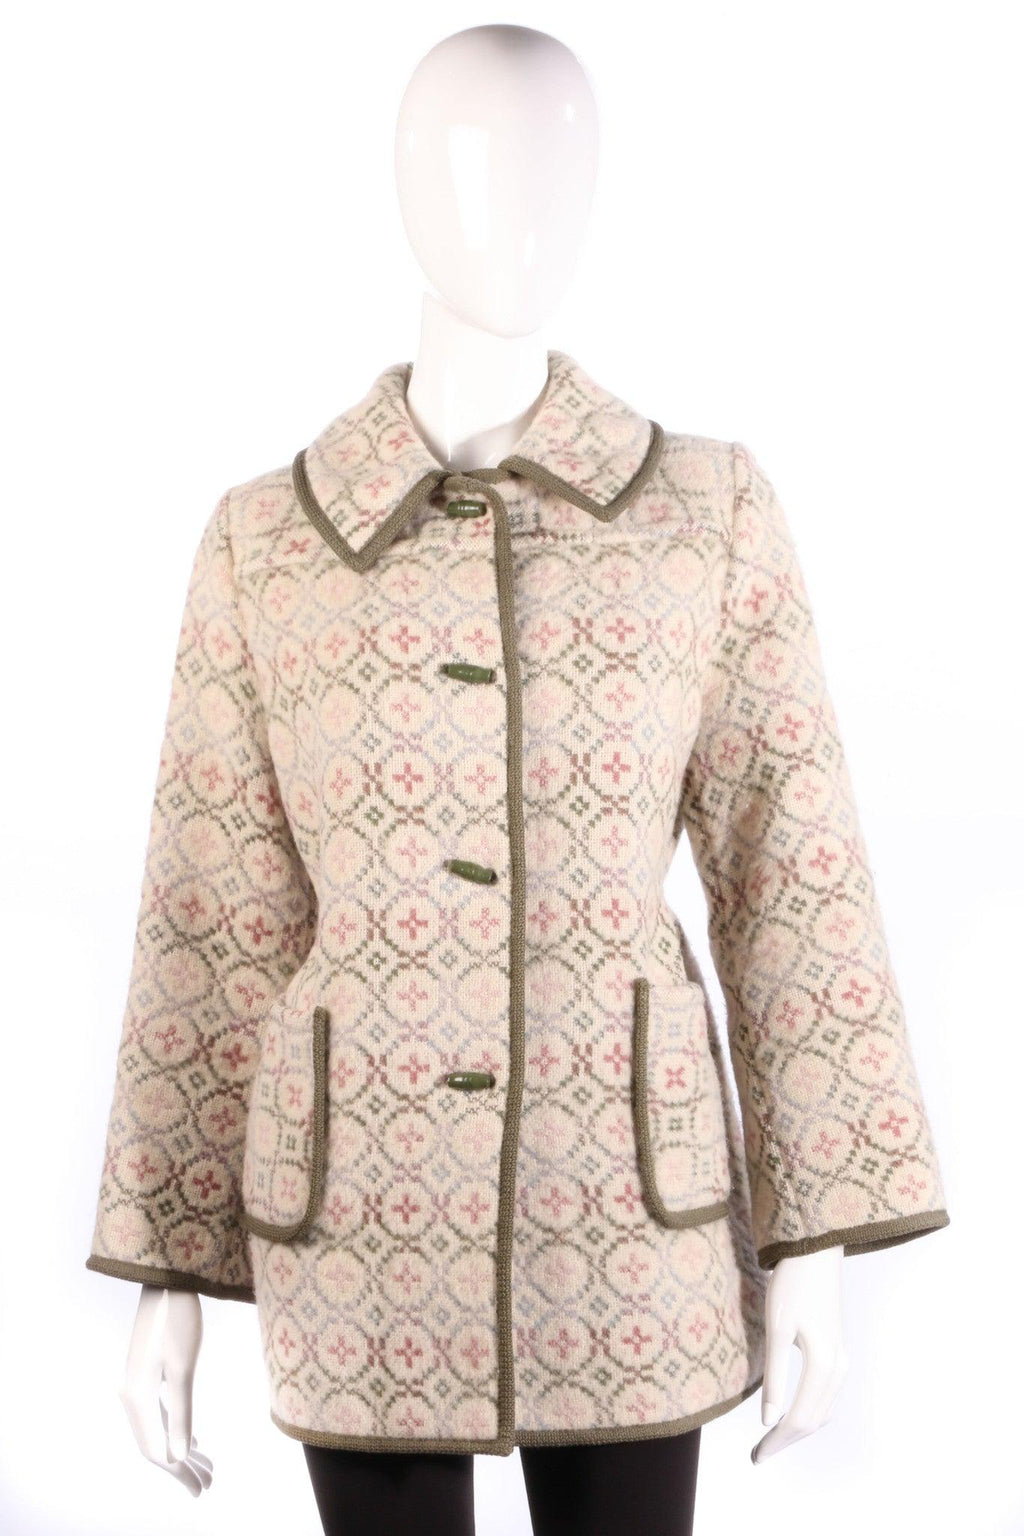 Vintage Welsh Wool Jacket Cream with Pink and Green Size 14/16